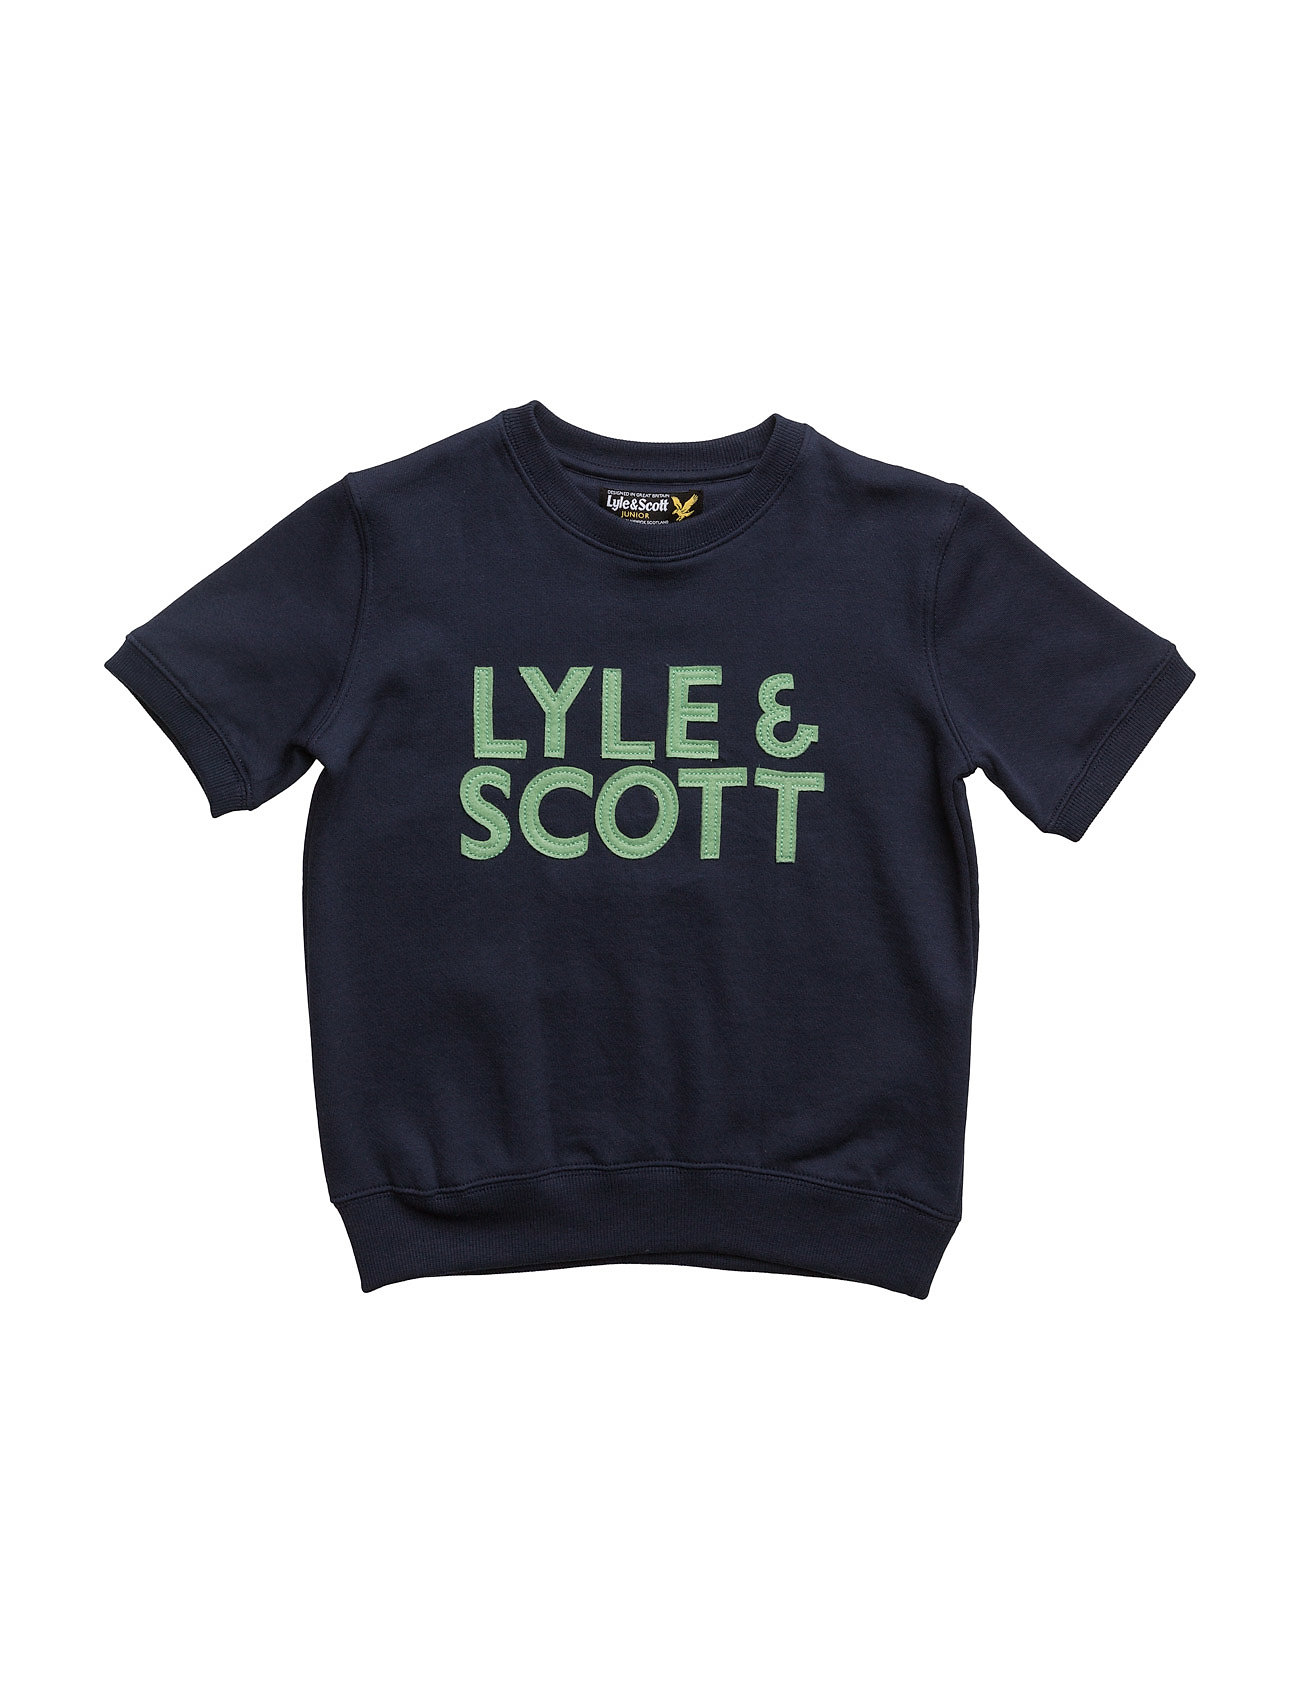 Lyle & Scott Crew Neck Sweatshirt With Artwork Ss thumbnail